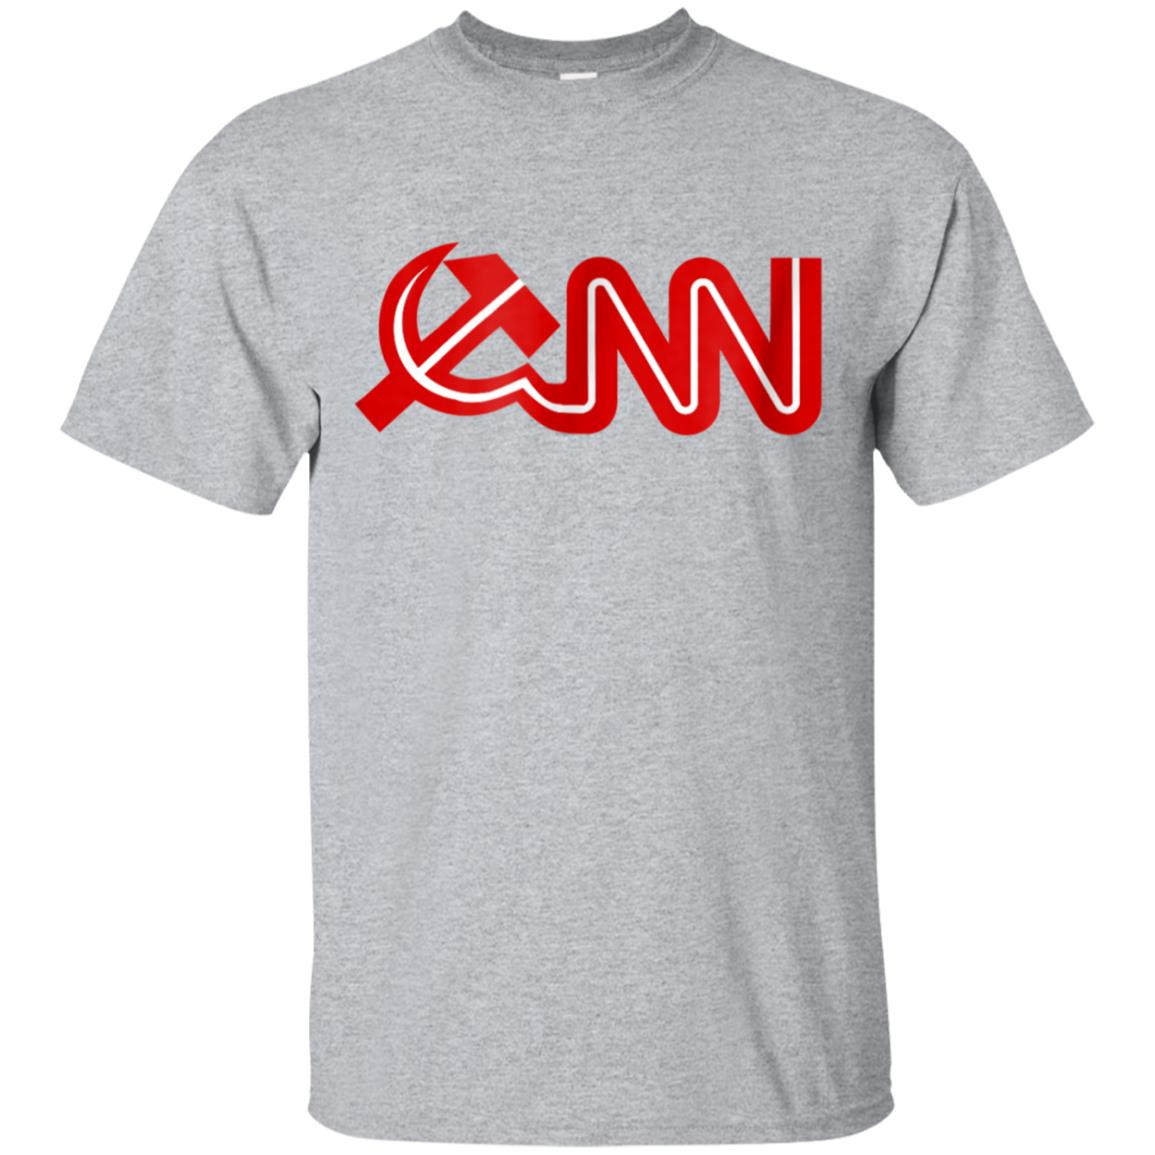 FAKE NEWS Media Republican Right Wing T Shirt 99promocode